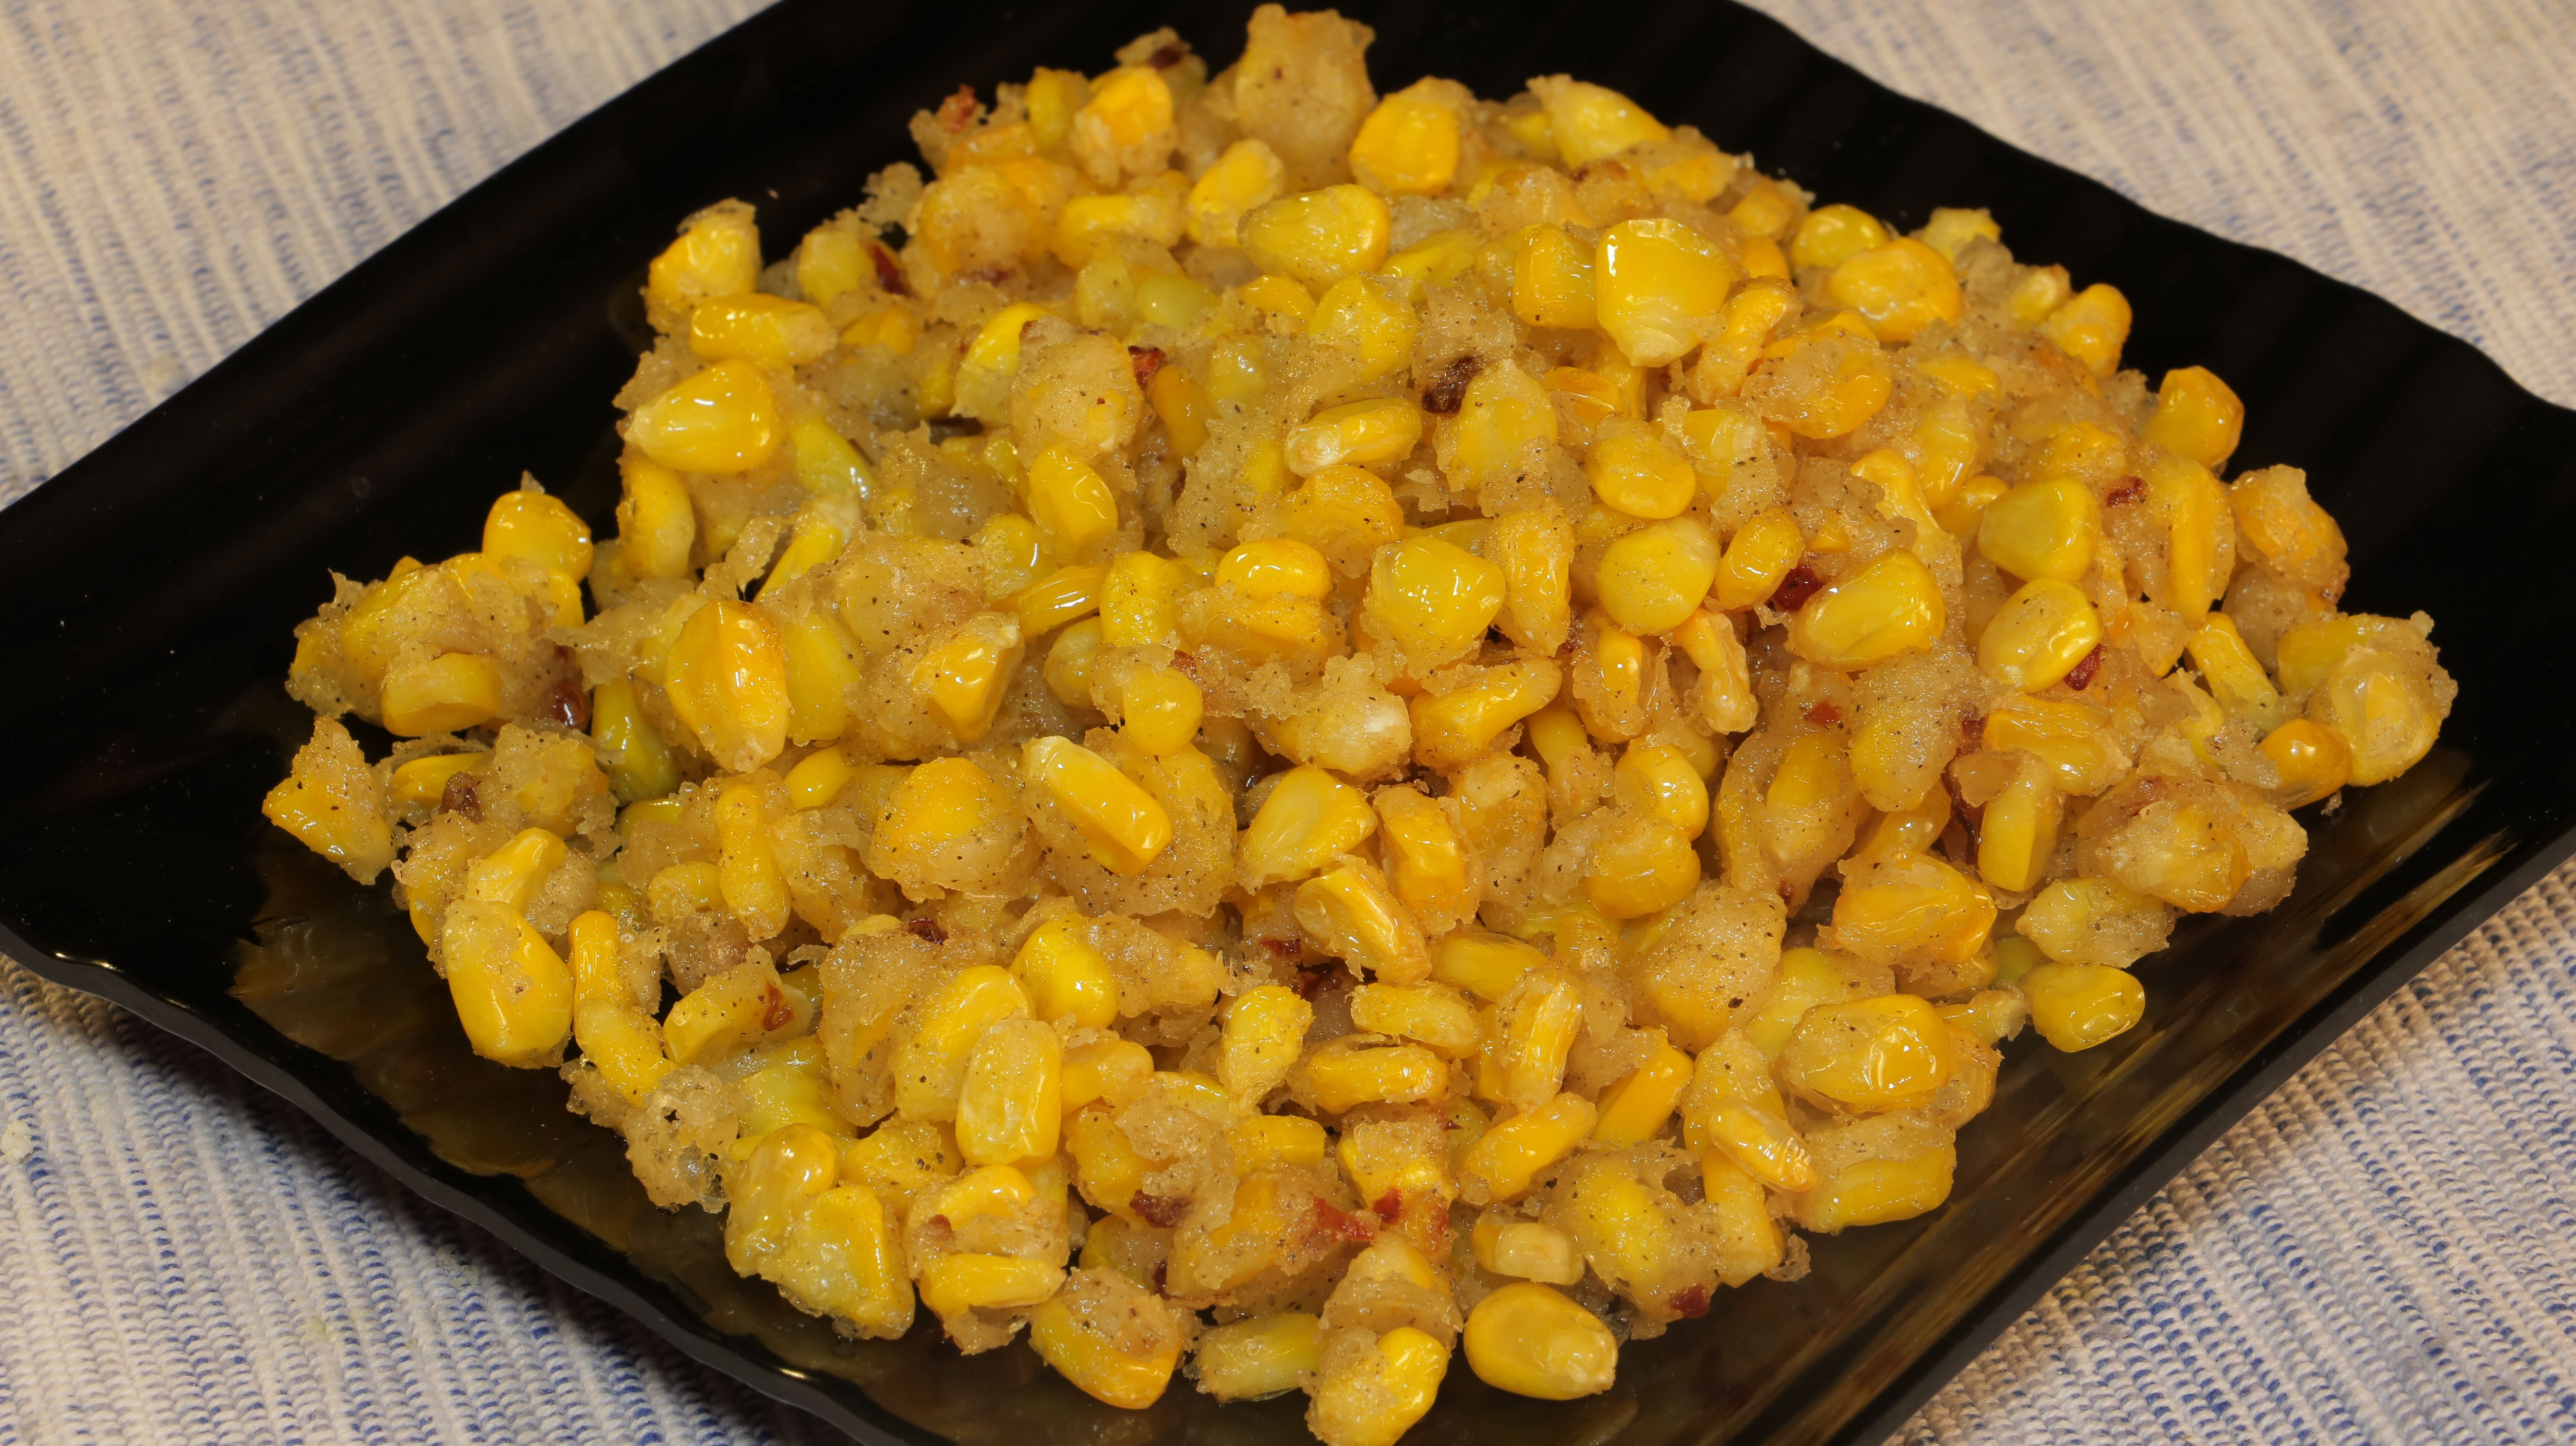 Crispy sweet corn recipe in hindi watch how to make crispy sweet restaurant style crispy sweet corn recipe in hindi how to make crispy sweet corn at home in hindi fry baby corn is kind of a snacks or starter forumfinder Image collections